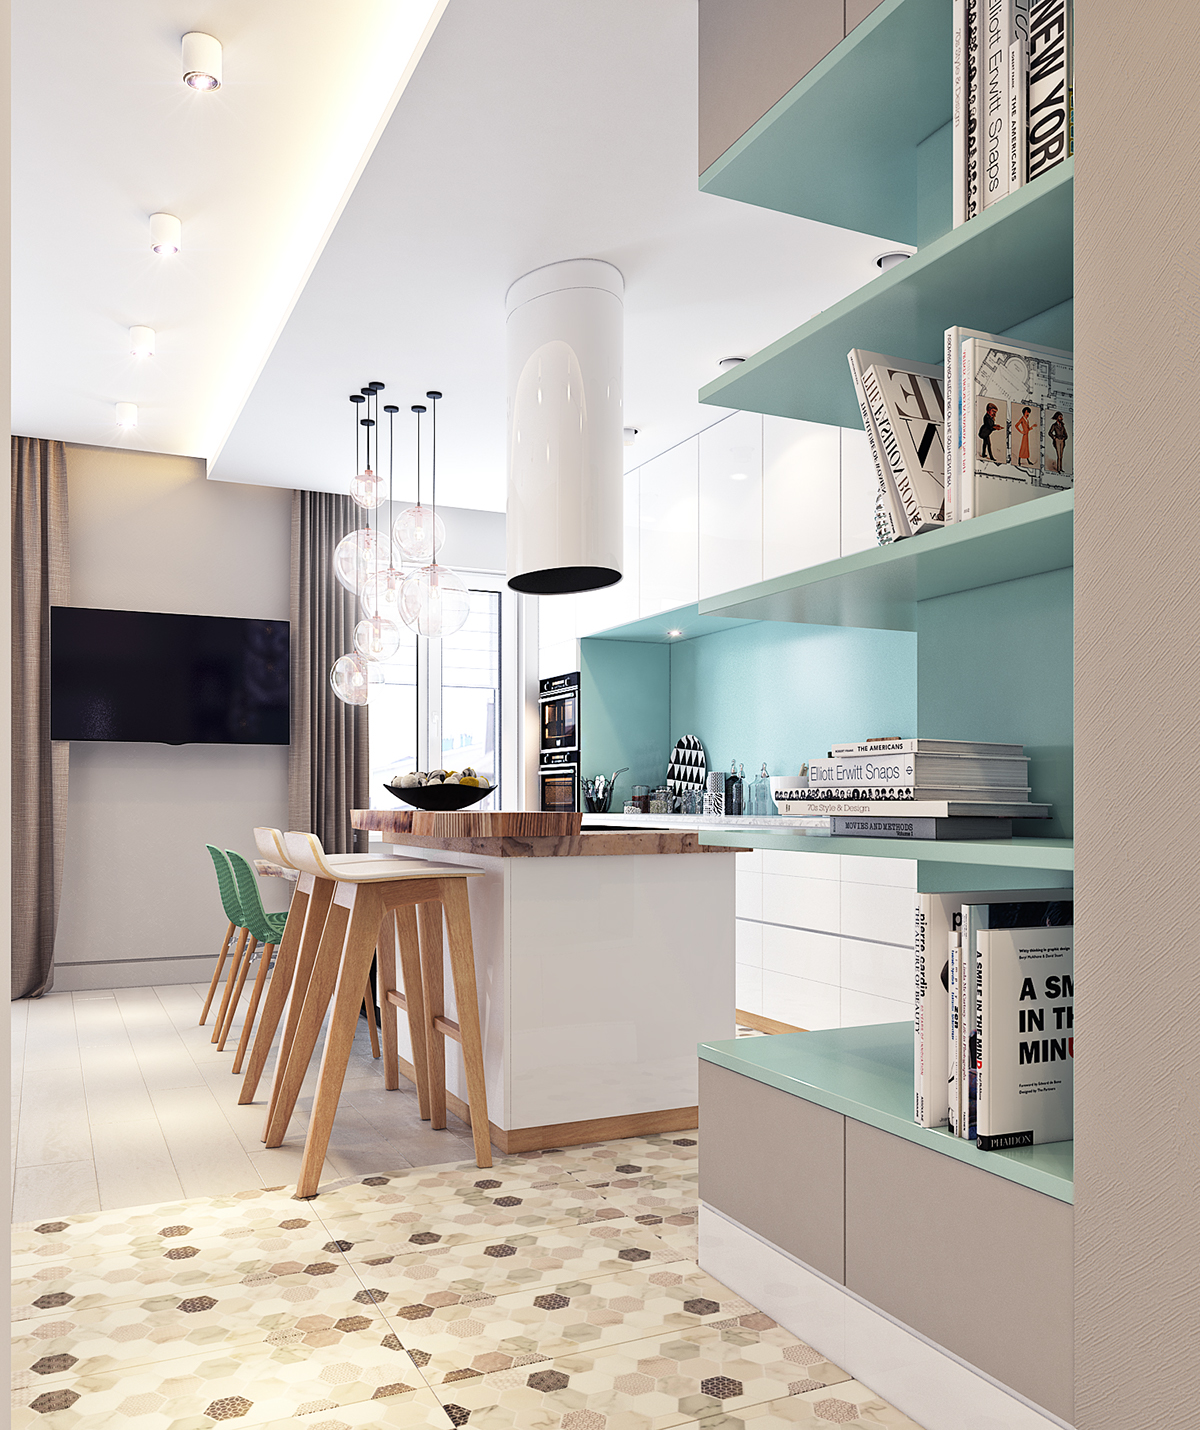 Apartment in Moscow (45 sq.m.) on Behance